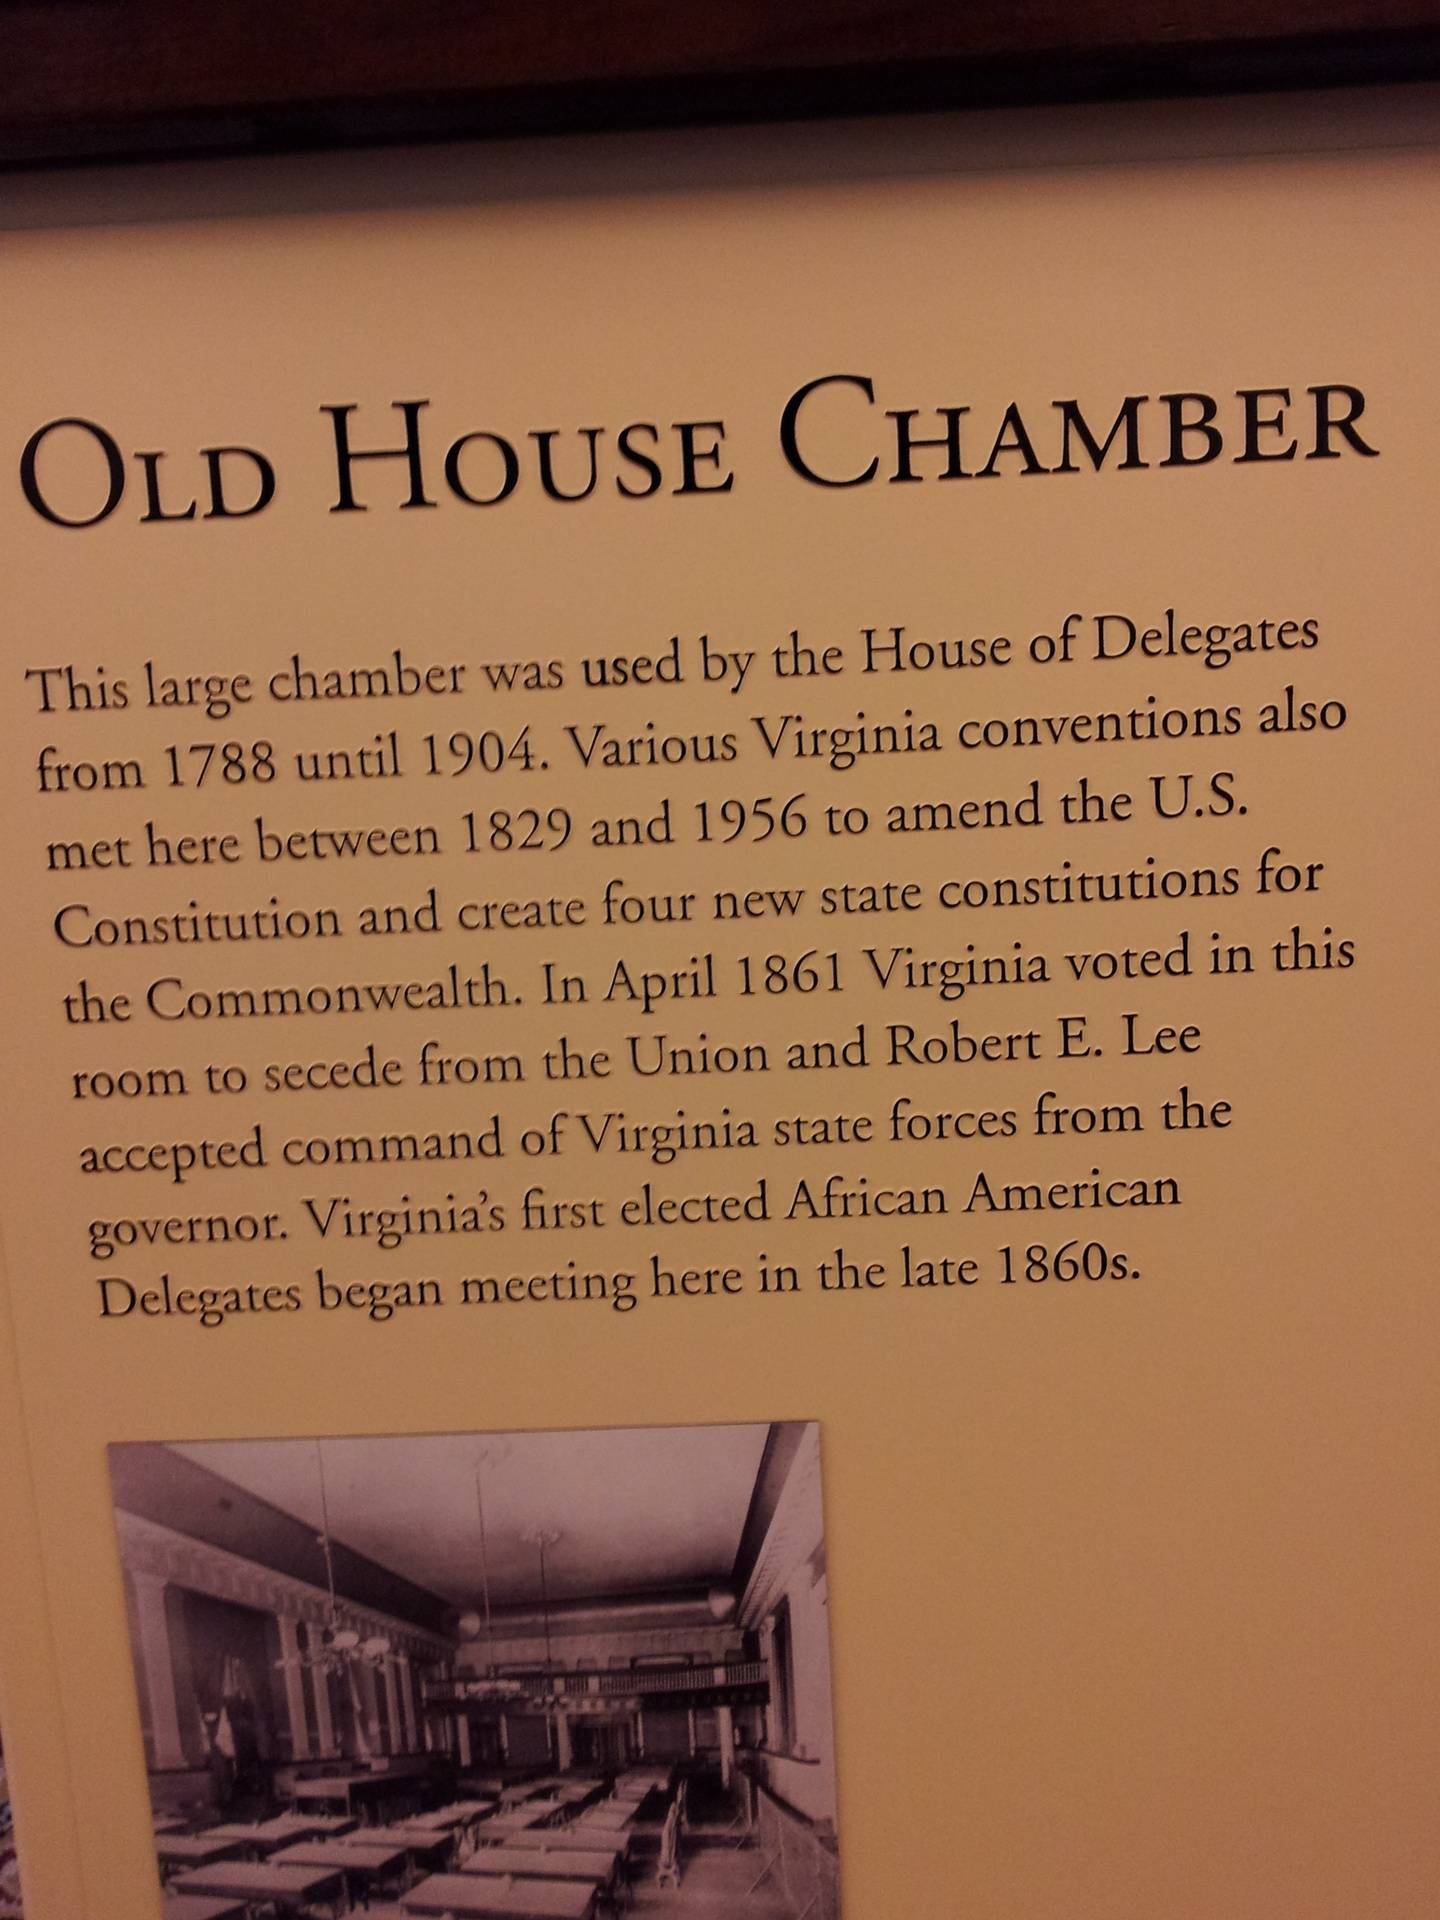 Description of Old House Chamber